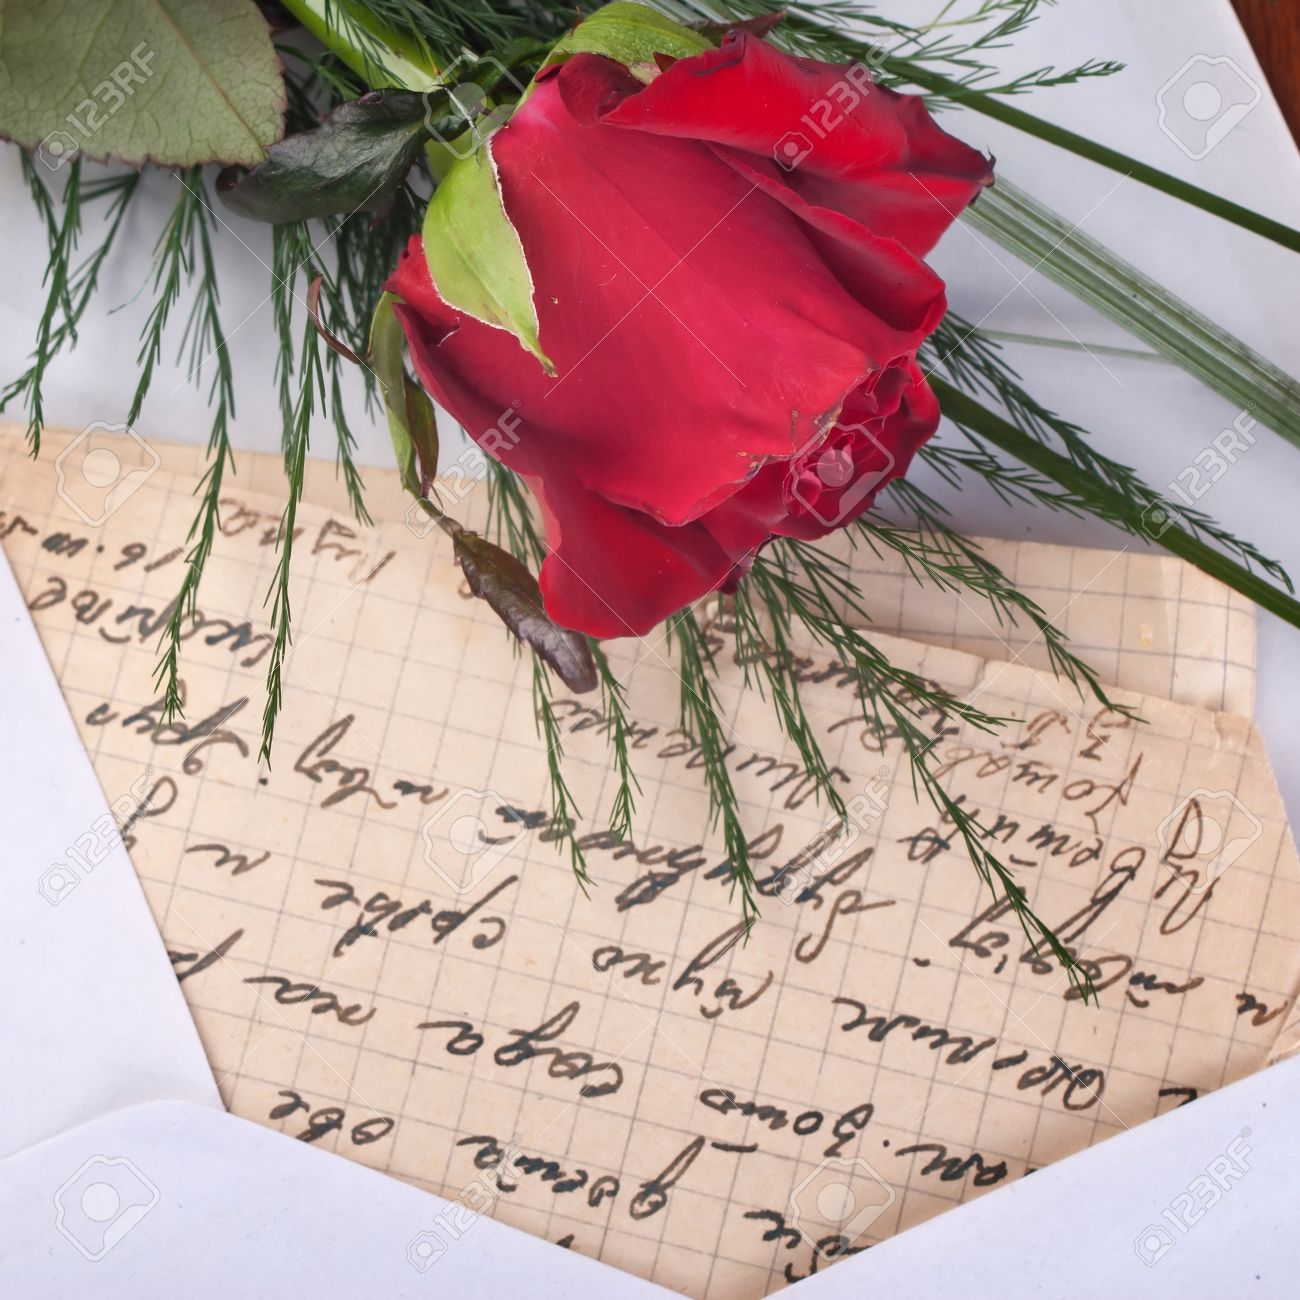 Red Rose and Letter on wooden background